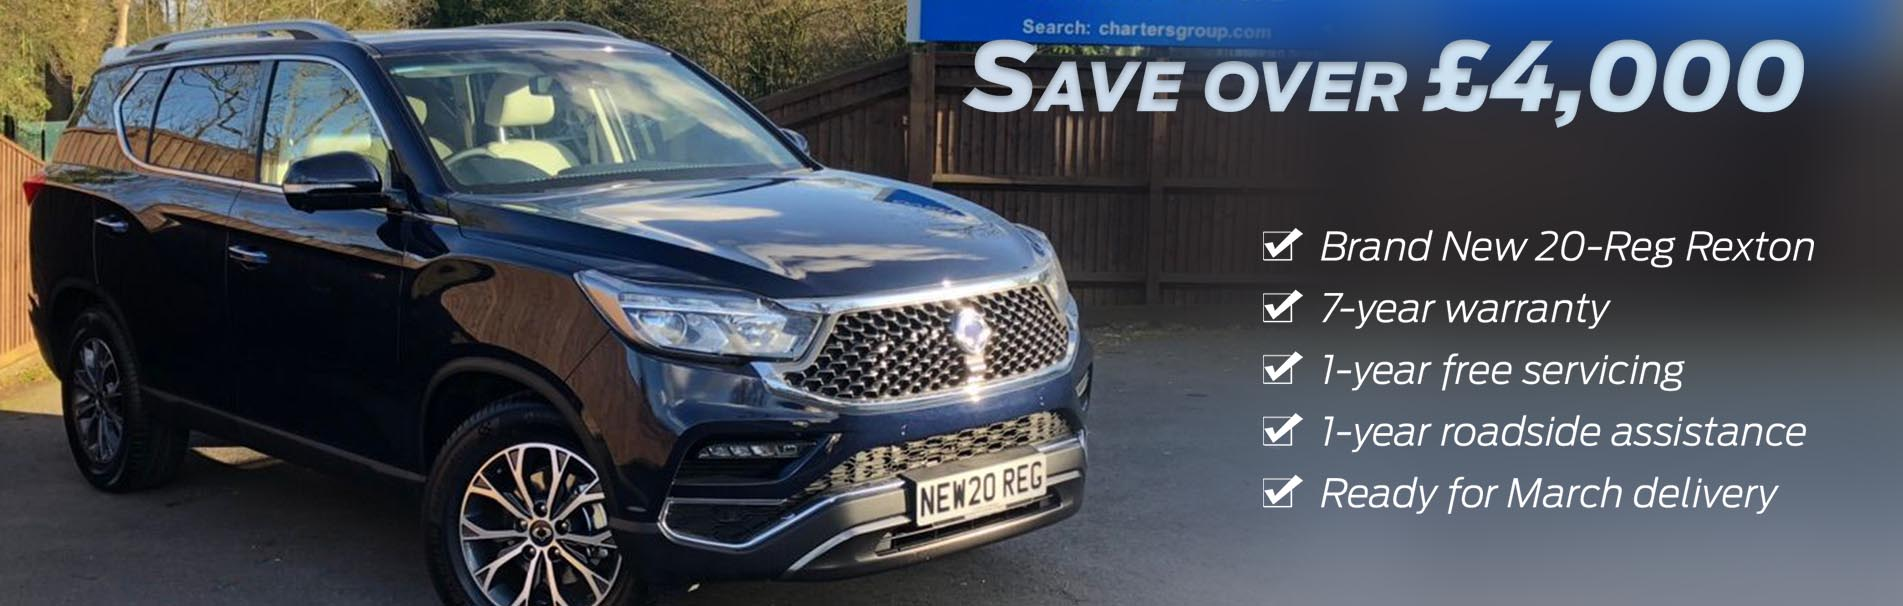 20-reg-ssangyong-rexton-ultimate-dandy-blue-saving-berkshire-sli